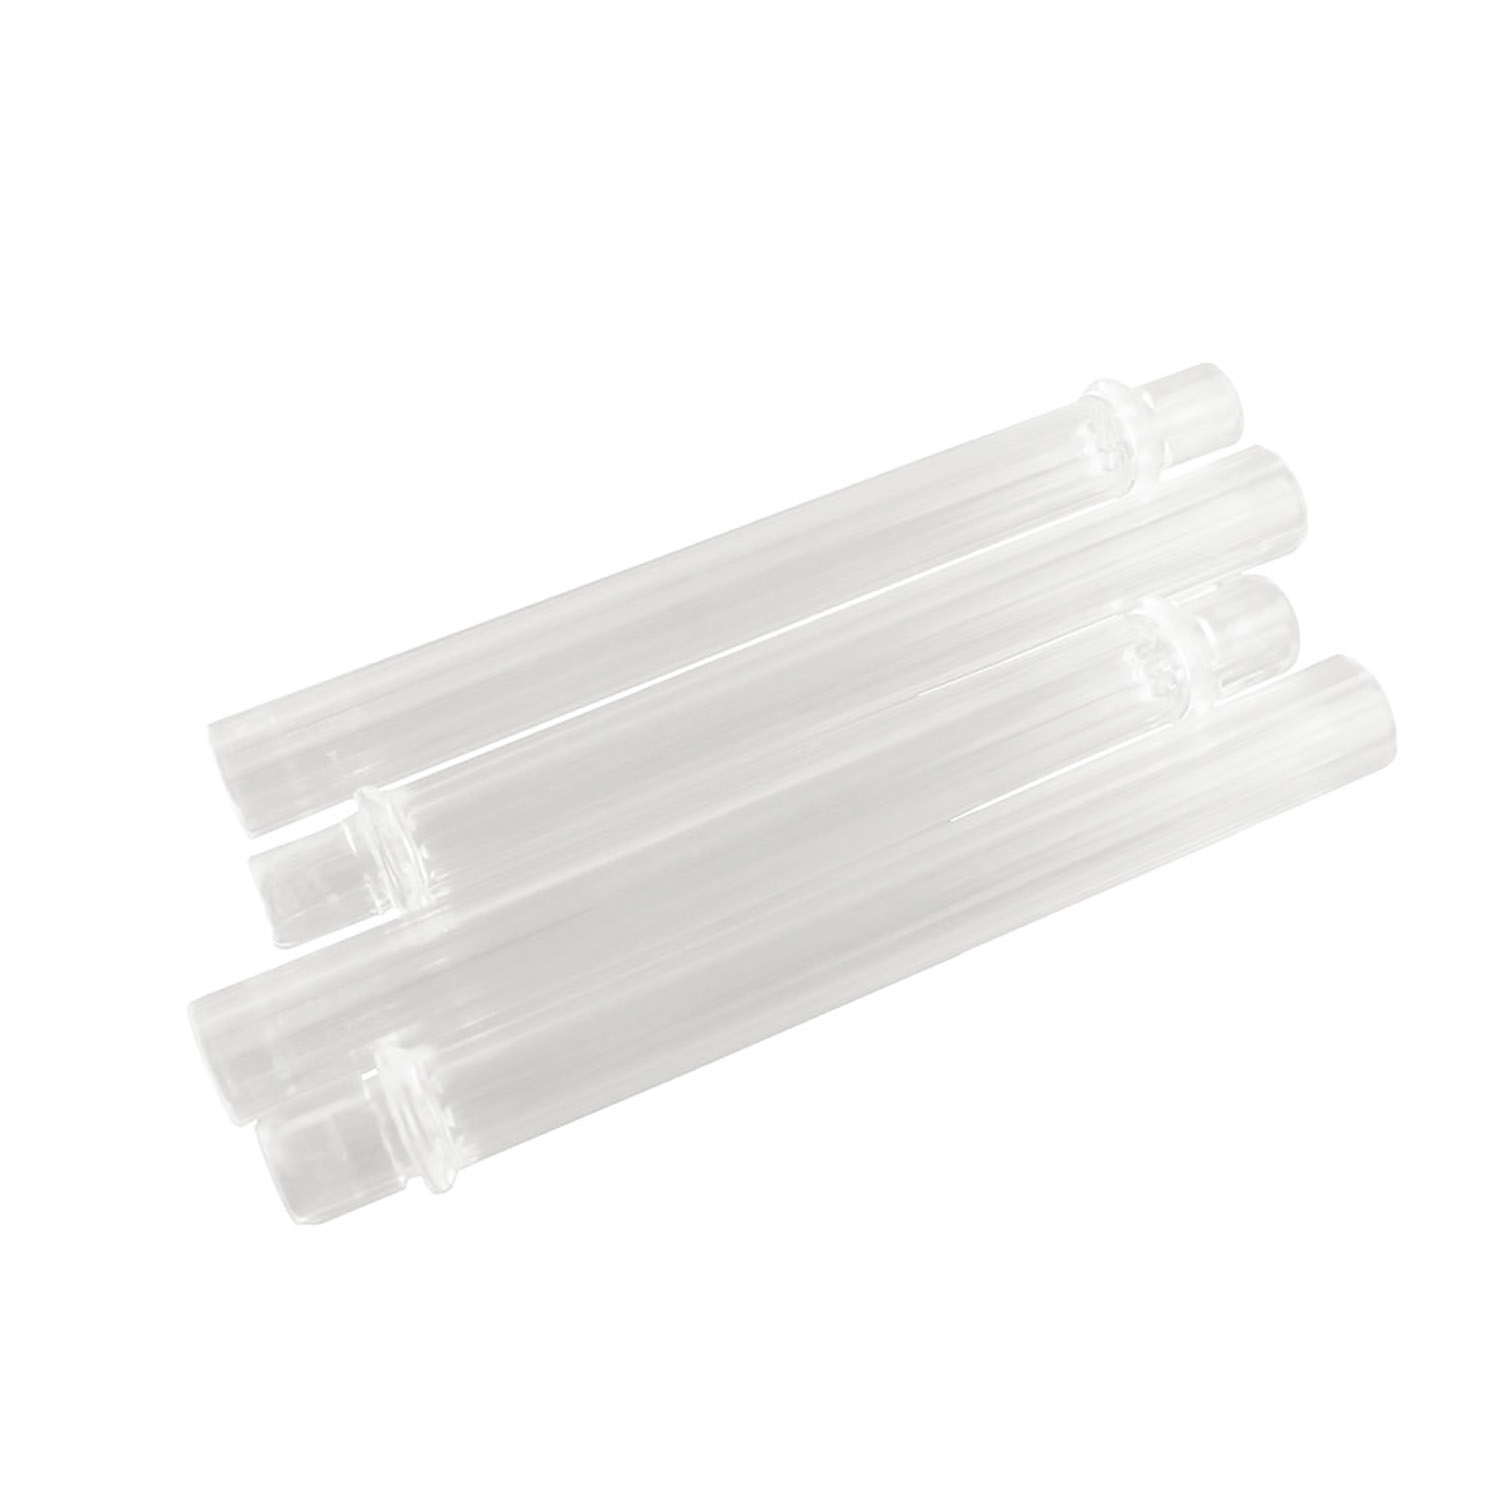 "7"" Clear Reg. Locking Columns"